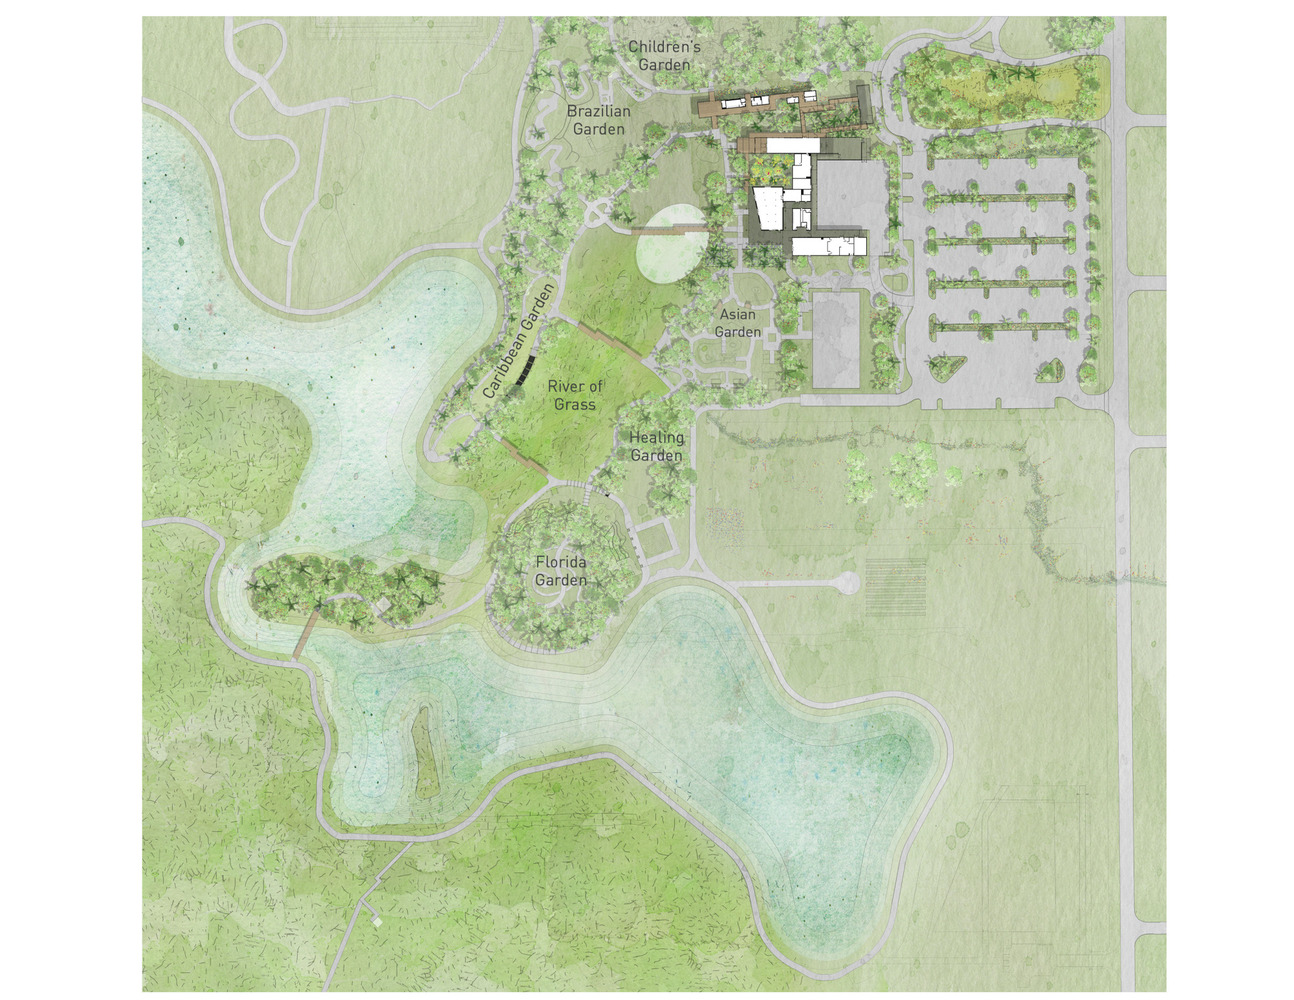 Naples Botanical Garden Visitor Center,Master Plan